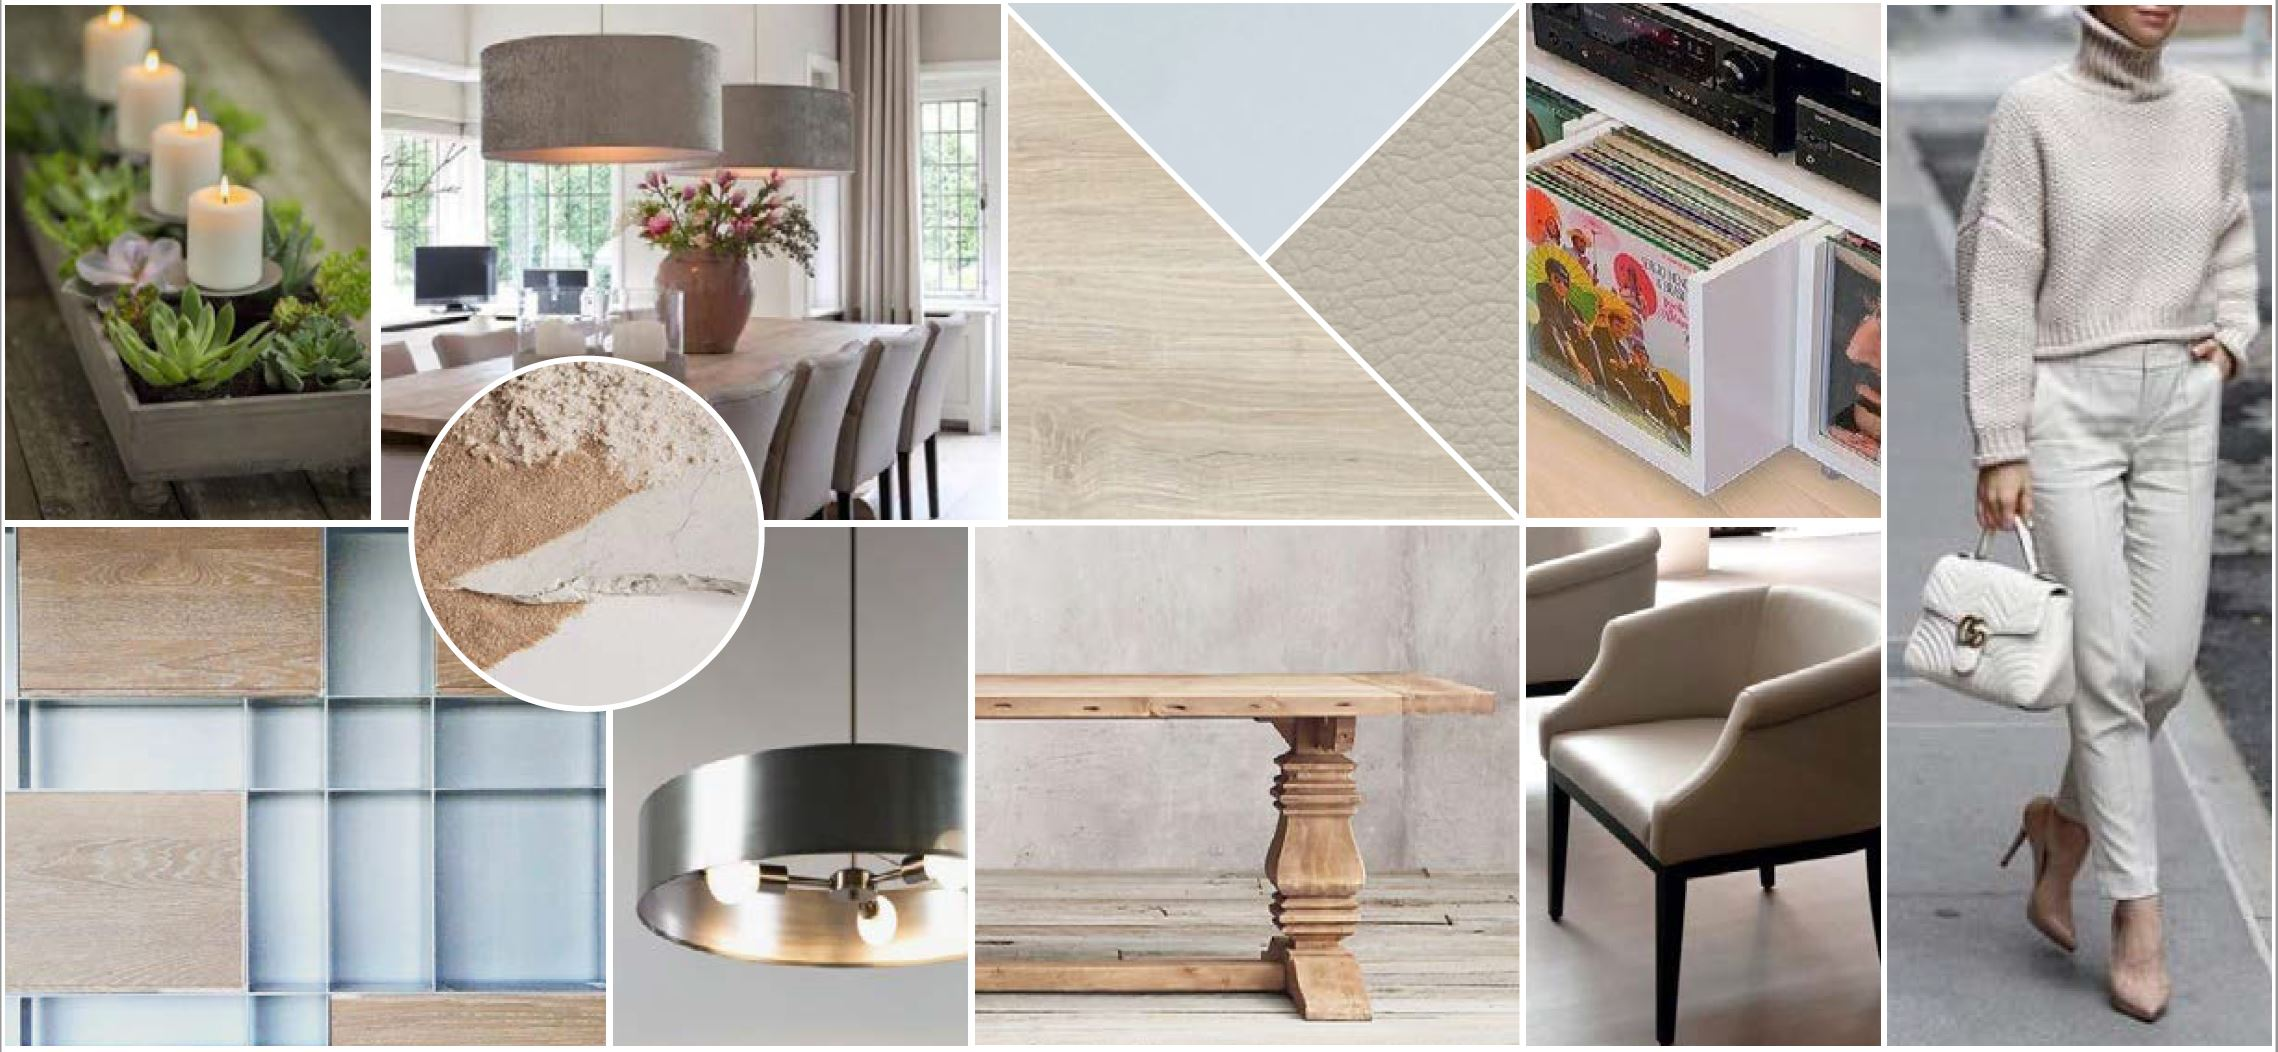 We reflected this in the moodboard we created with light oak wood tones, warm neutrals and interesting yet subtle geometric patterns.